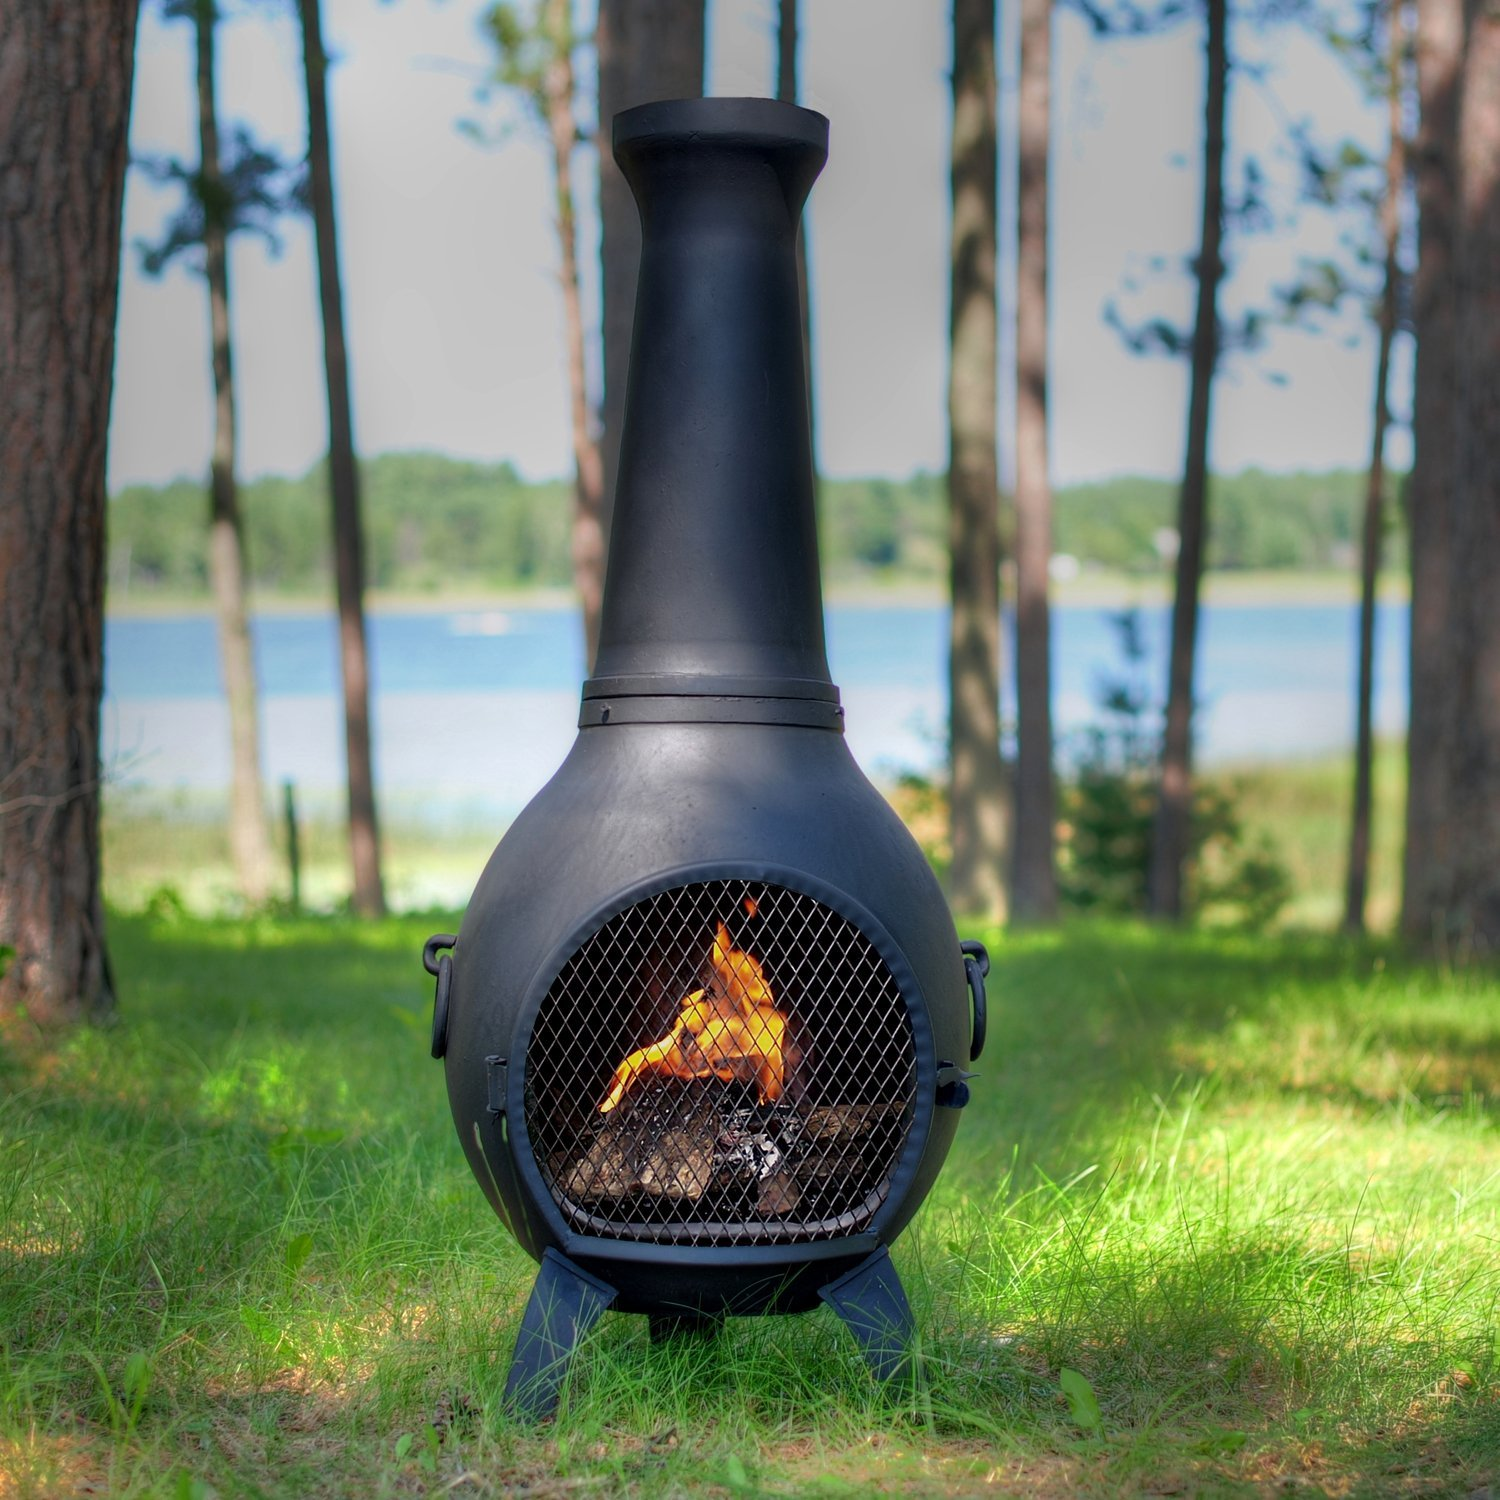 Lit Your Outdoor Space Nuance with Chiminea Fire Pit for ... on Outdoor Fireplace Pit id=82998